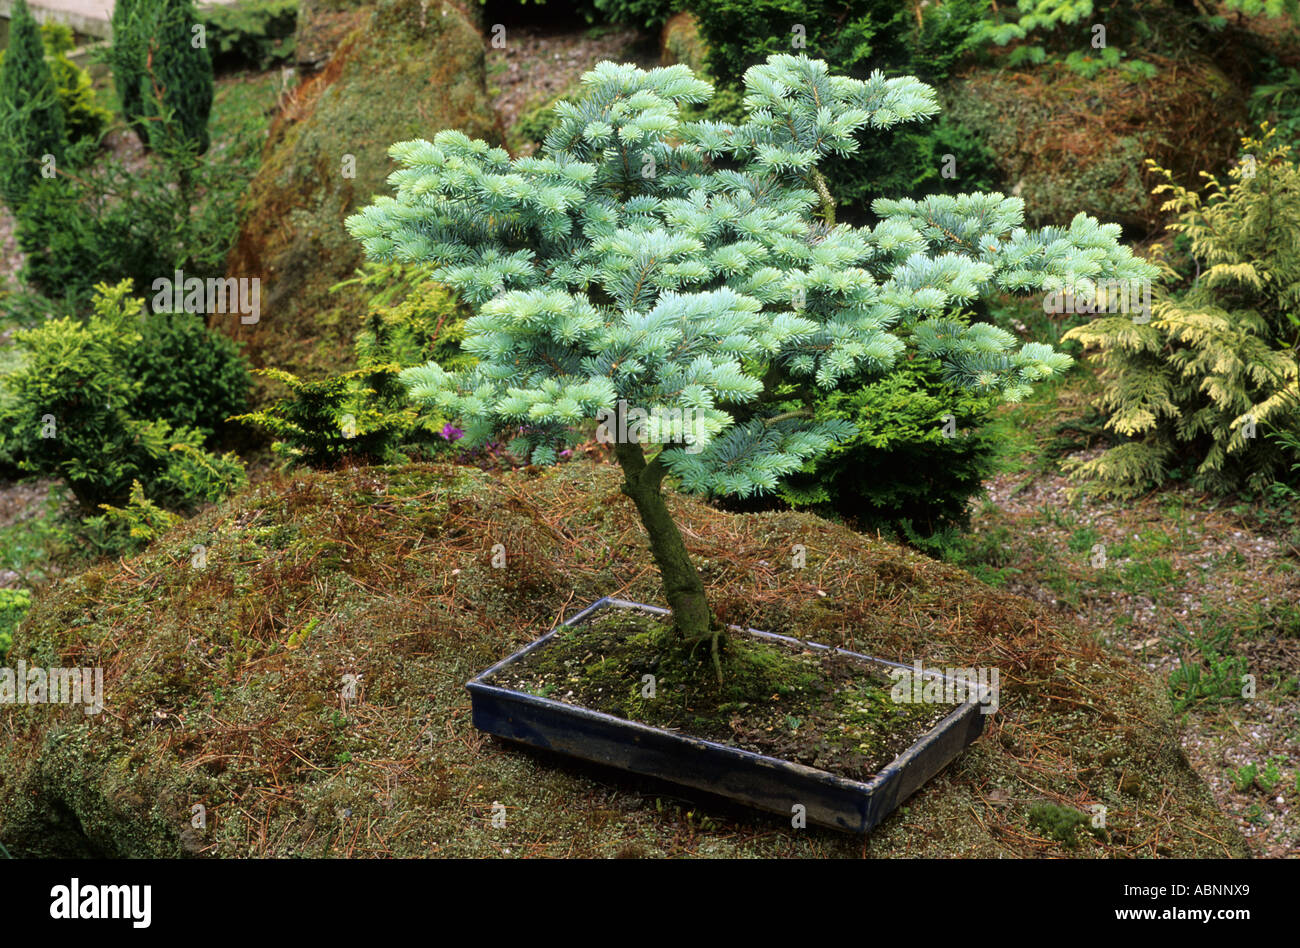 P p Glauca Globosa miniature tree in container bonsai Japanese garden style evergreen plant